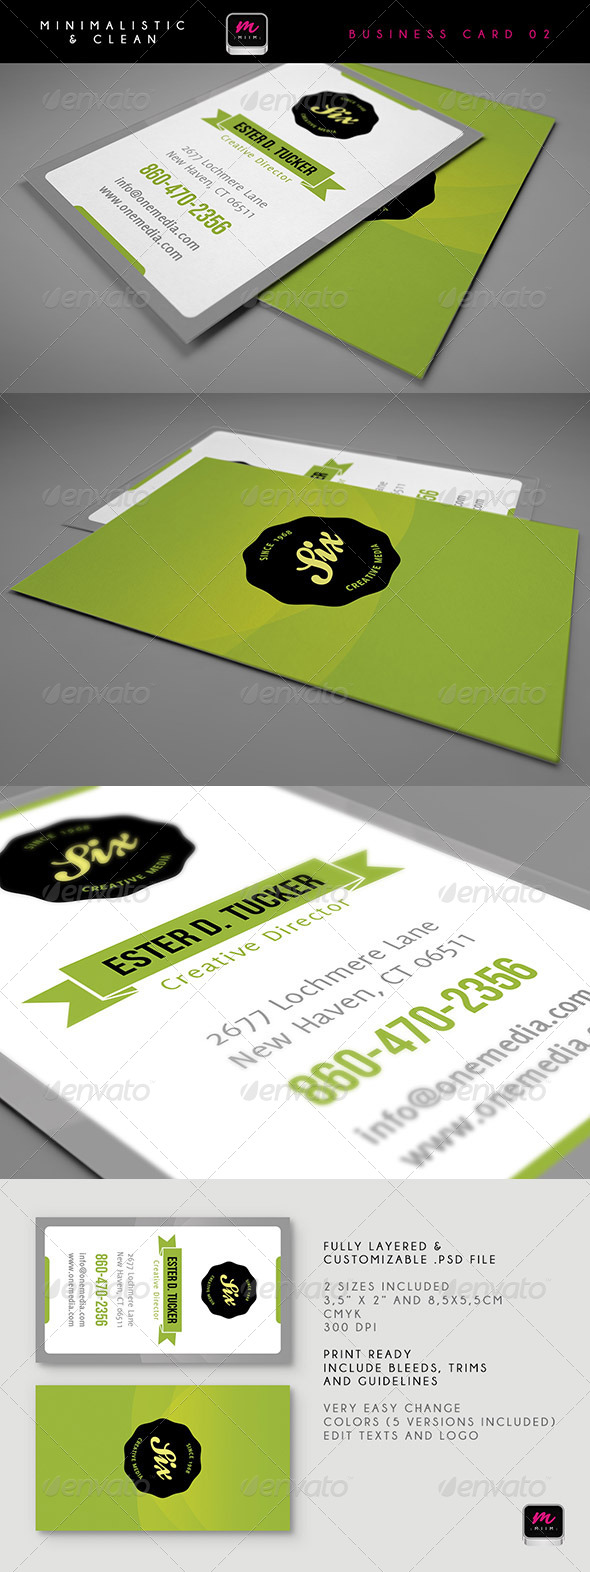 GraphicRiver Clean Business Card Template 03 5901518